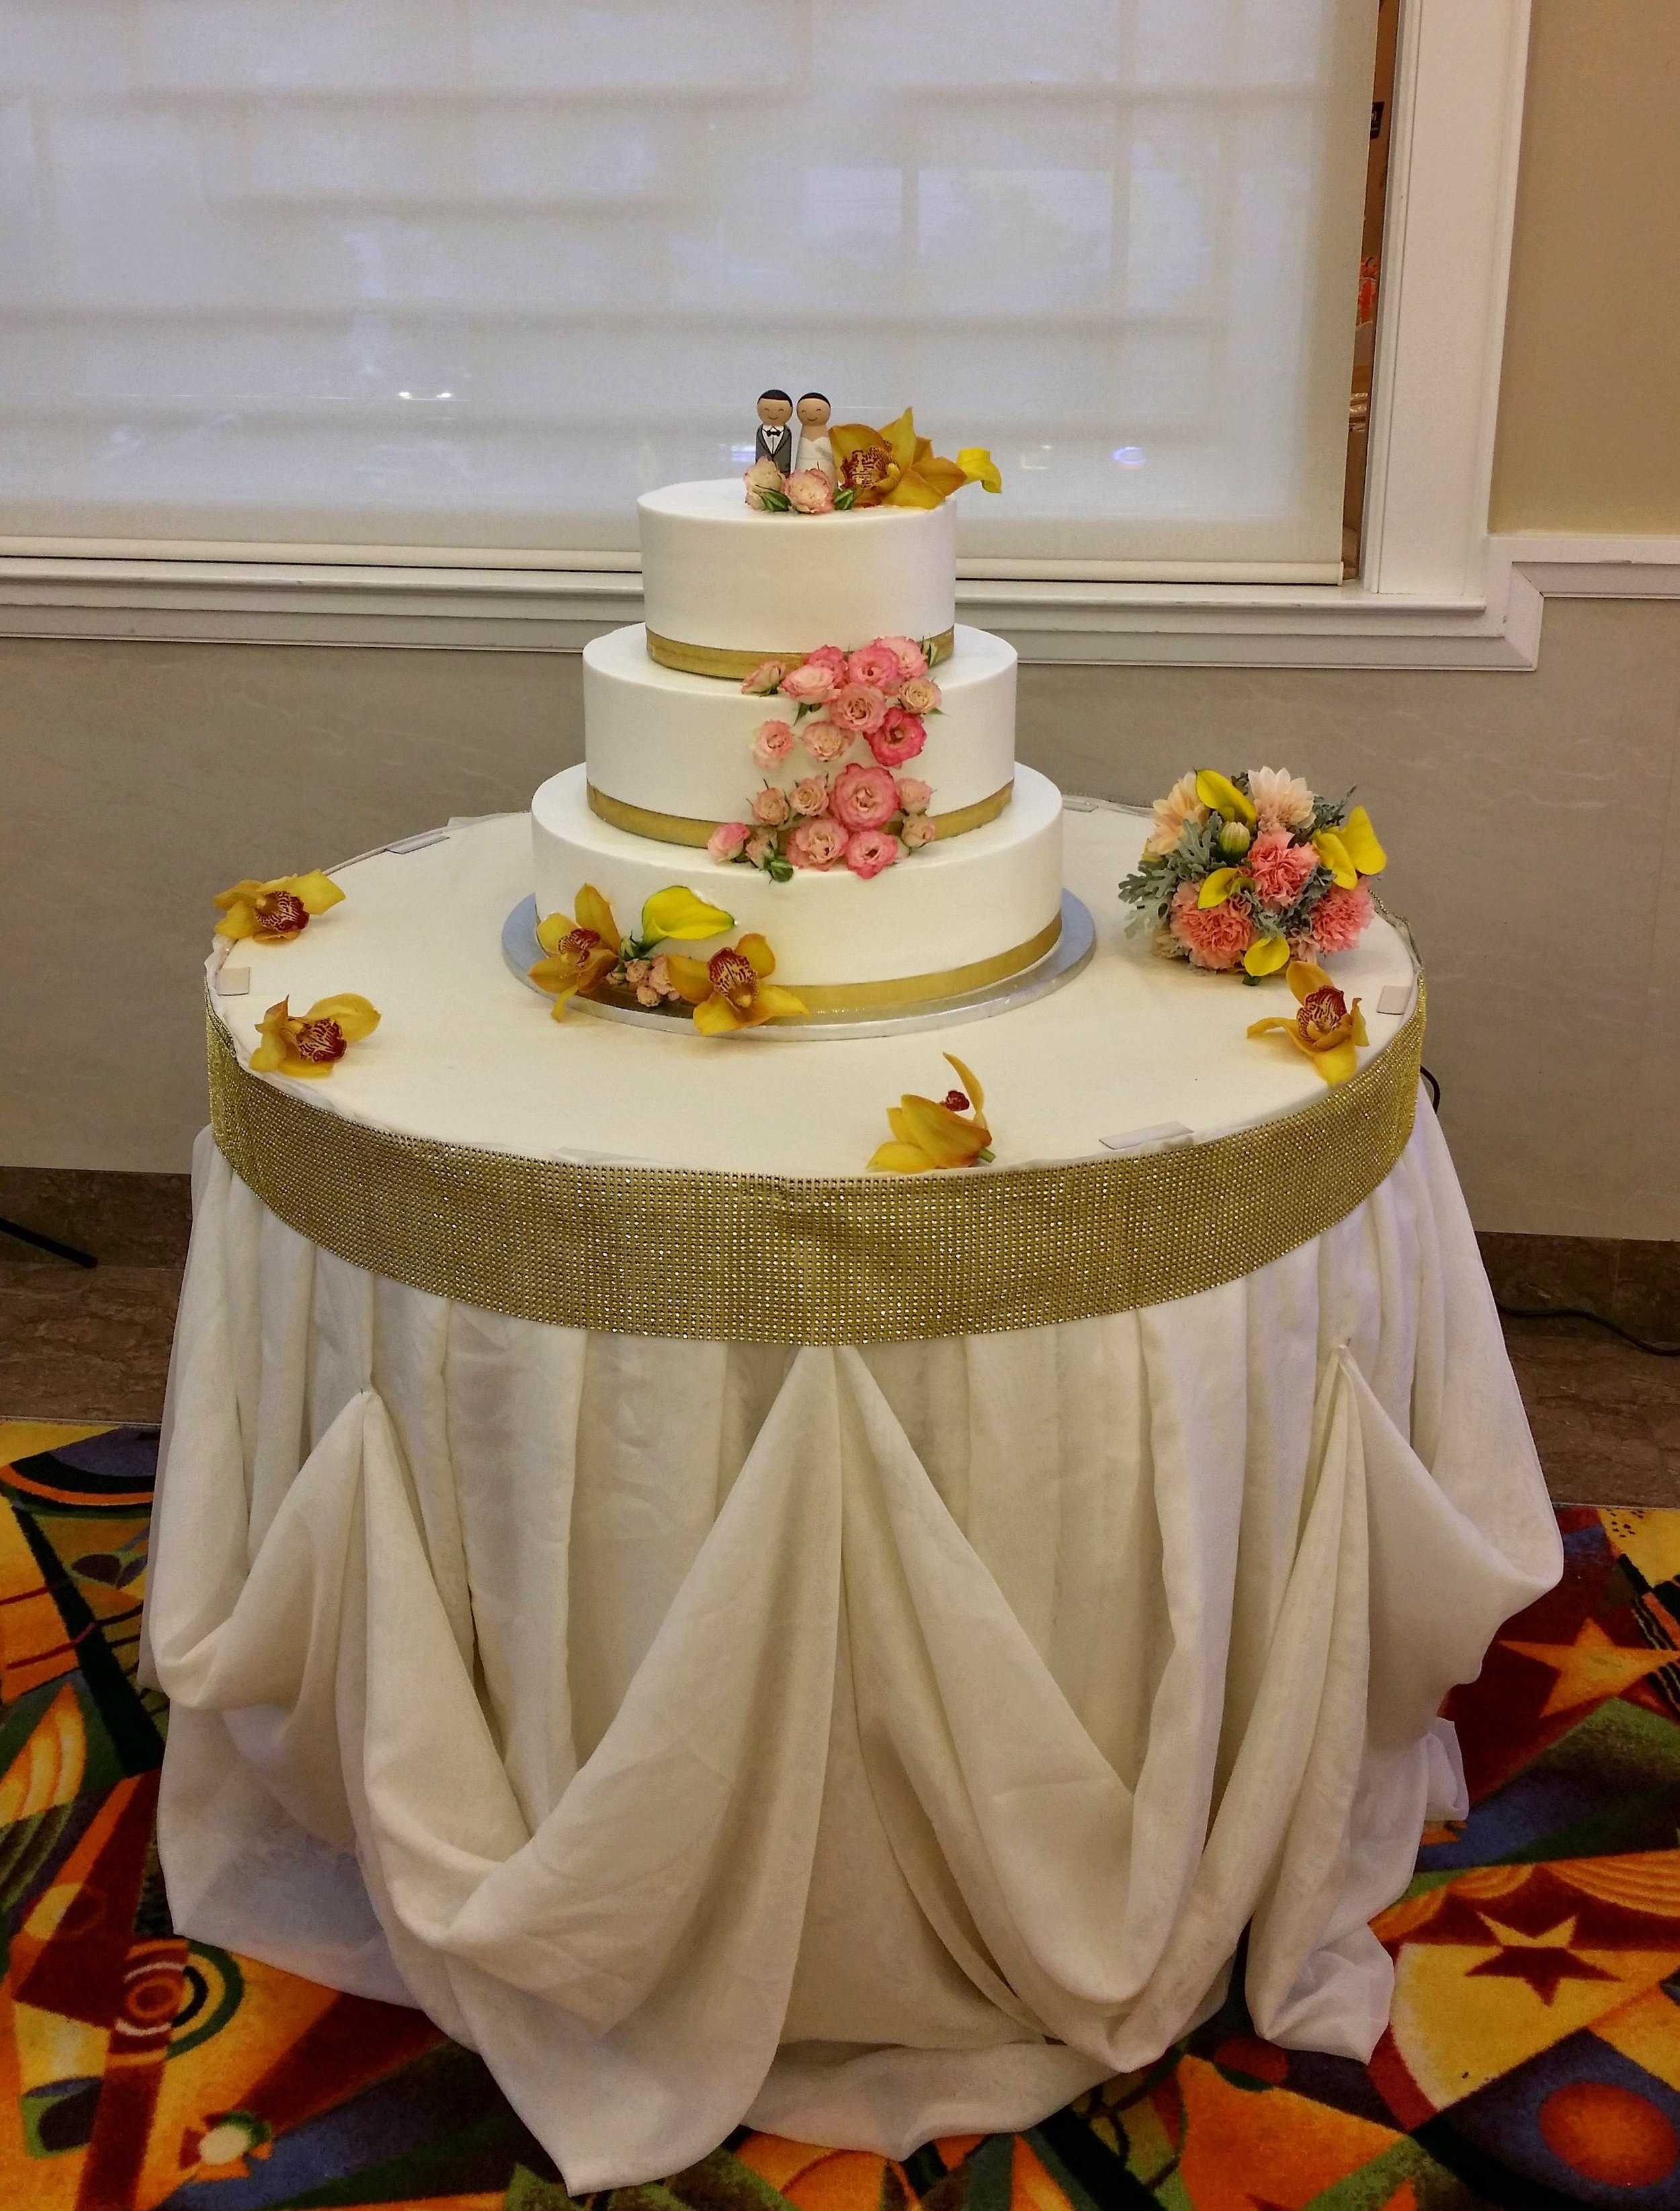 - What better way to bridge together the cake and the table showcasing the cake than by coordinating the colors. Top it off with some simple orchids and we couldn't be more excited how lovely the floral accents lended themselves.